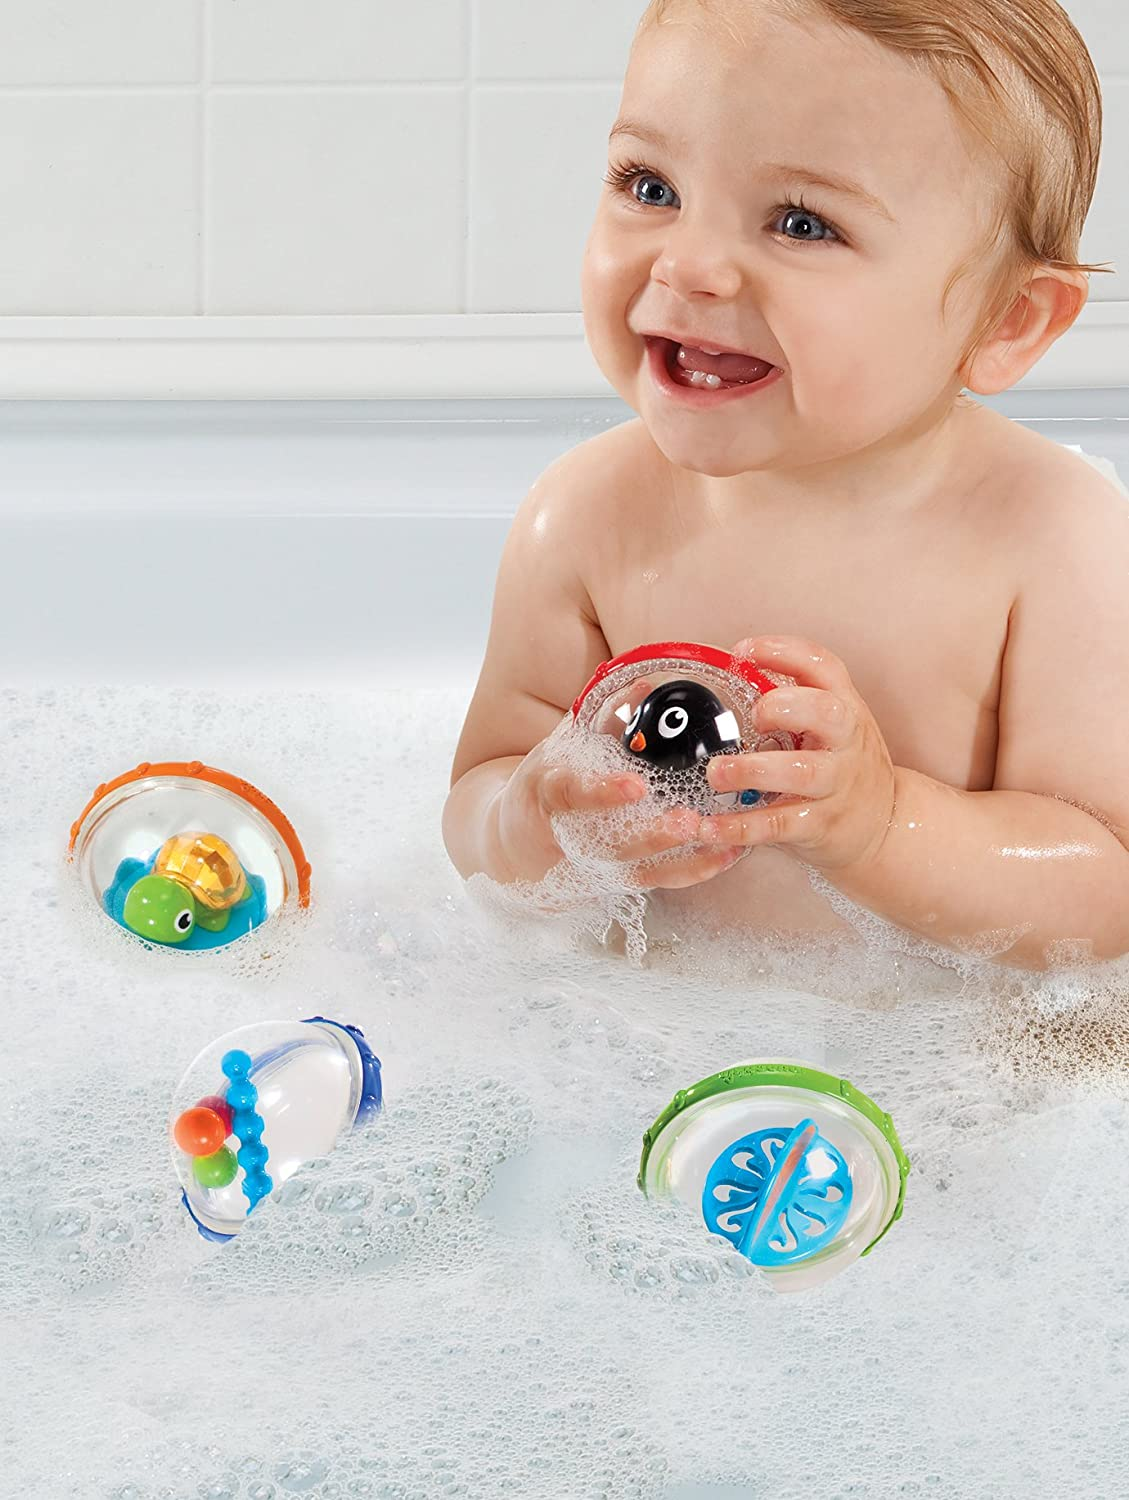 Amazon.com : Munchkin Float and Play Bubbles Bath Toy, 4 Count : Baby